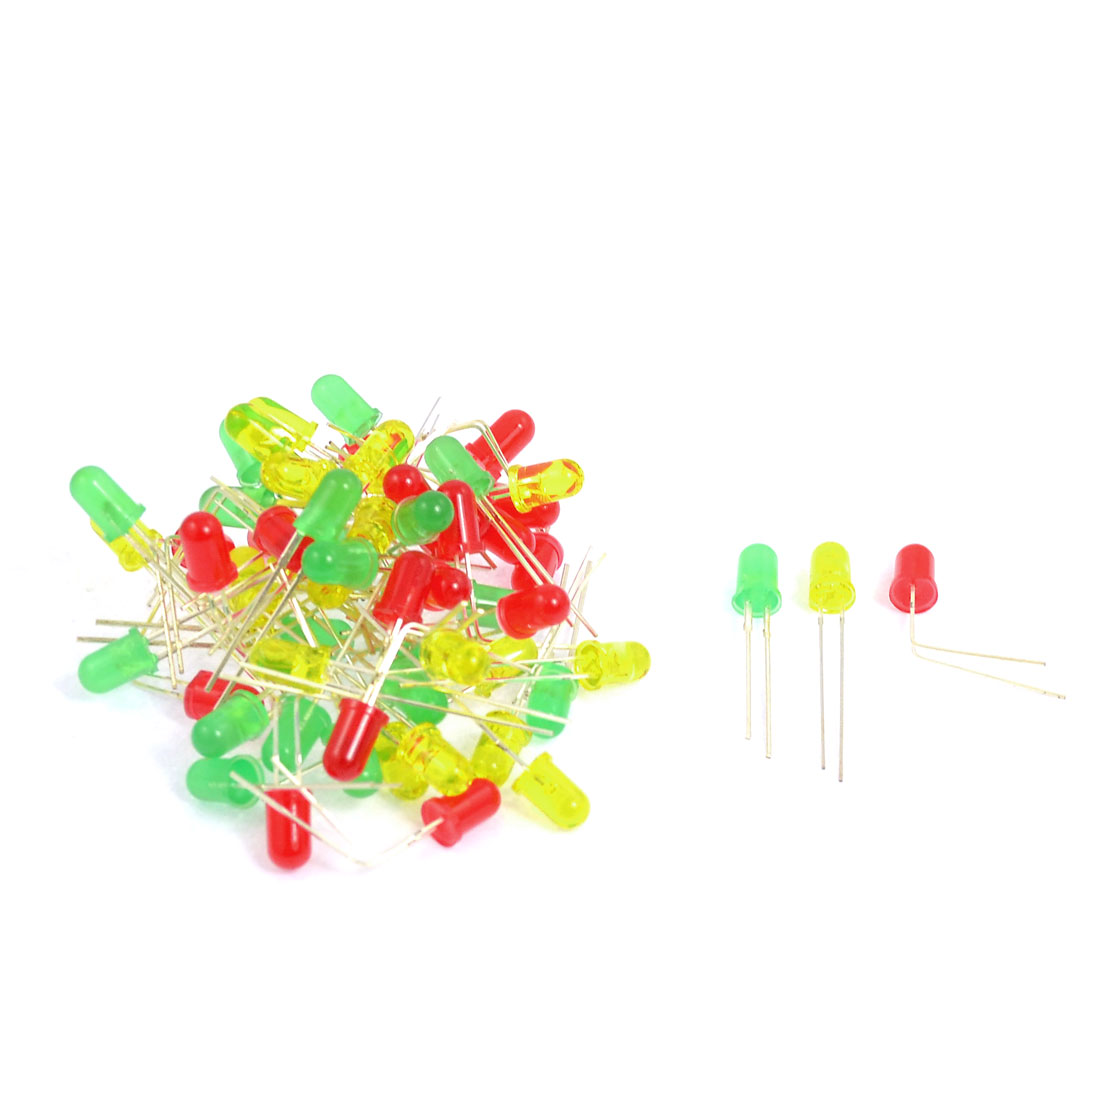 60 Pcs 3mm Dia Round Assorted Colors LED Light Emitting Diodes Lamp DC 3V